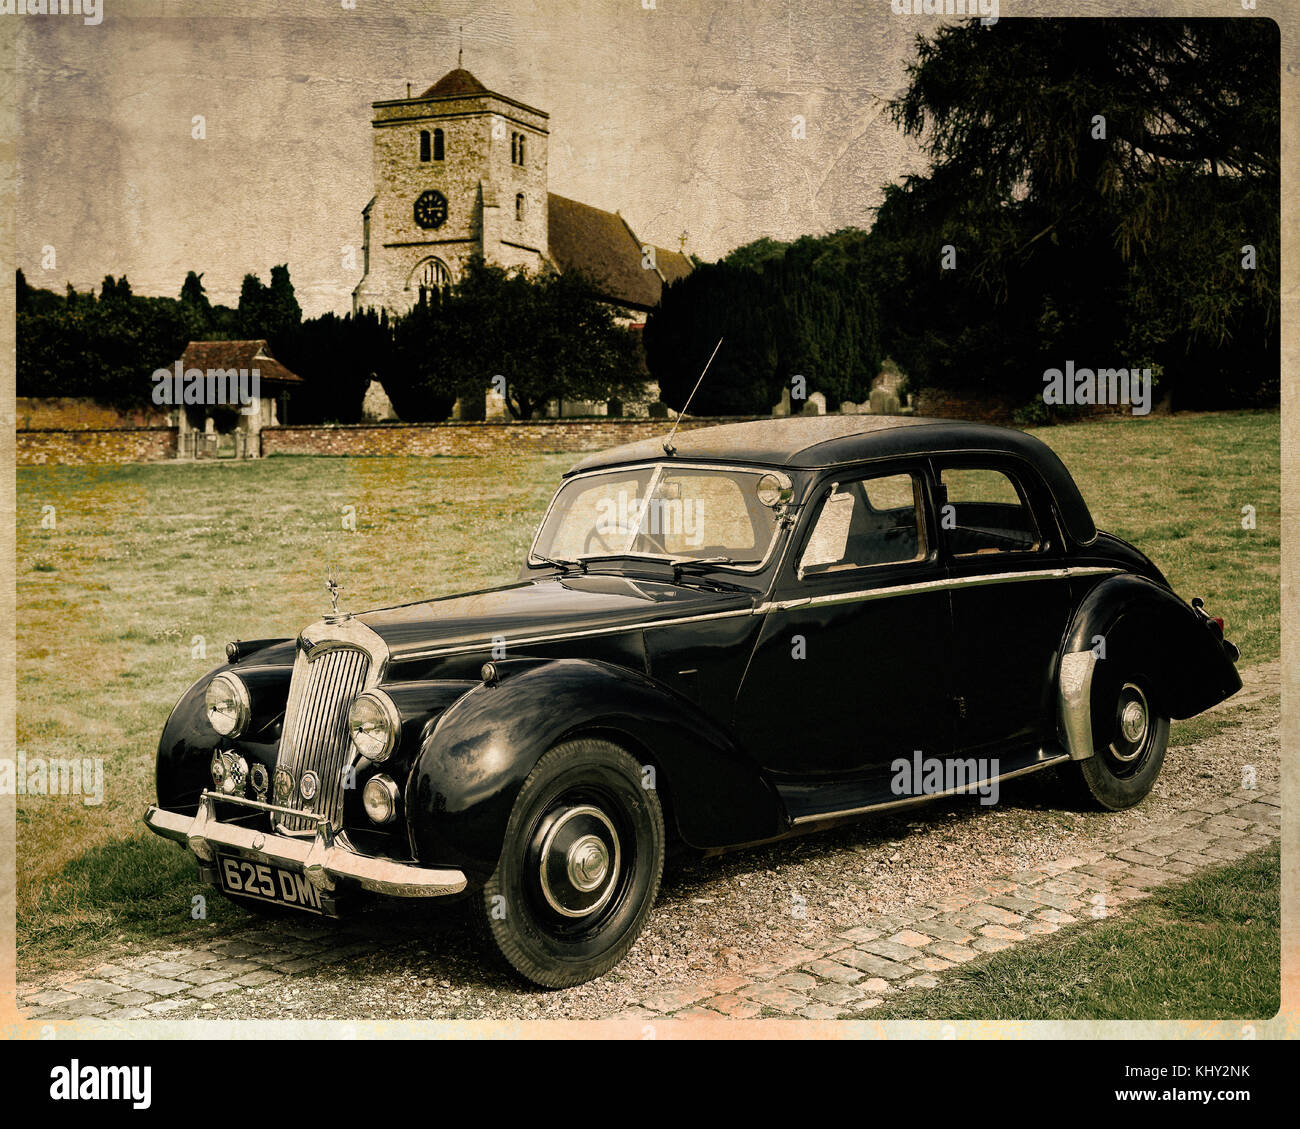 CLASSIC CARS: 1952 Riley RME 1.5 Saloon - Stock Image